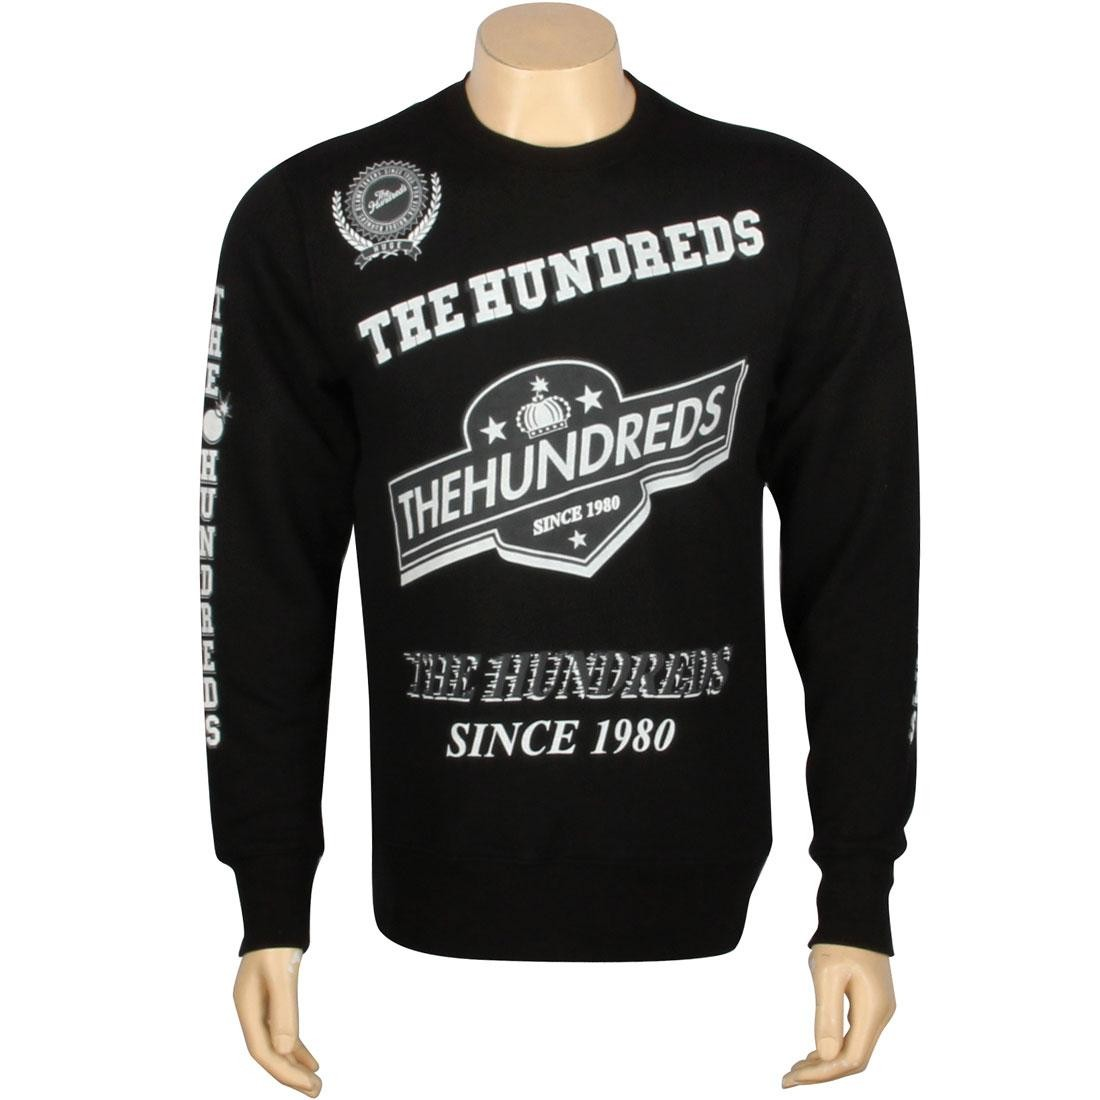 【海外限定】メンズファッション カットソー【 THE KING HUNDREDS カットソー KING【 CREWNECK BLACK】, Excellent One:4497079c --- officewill.xsrv.jp